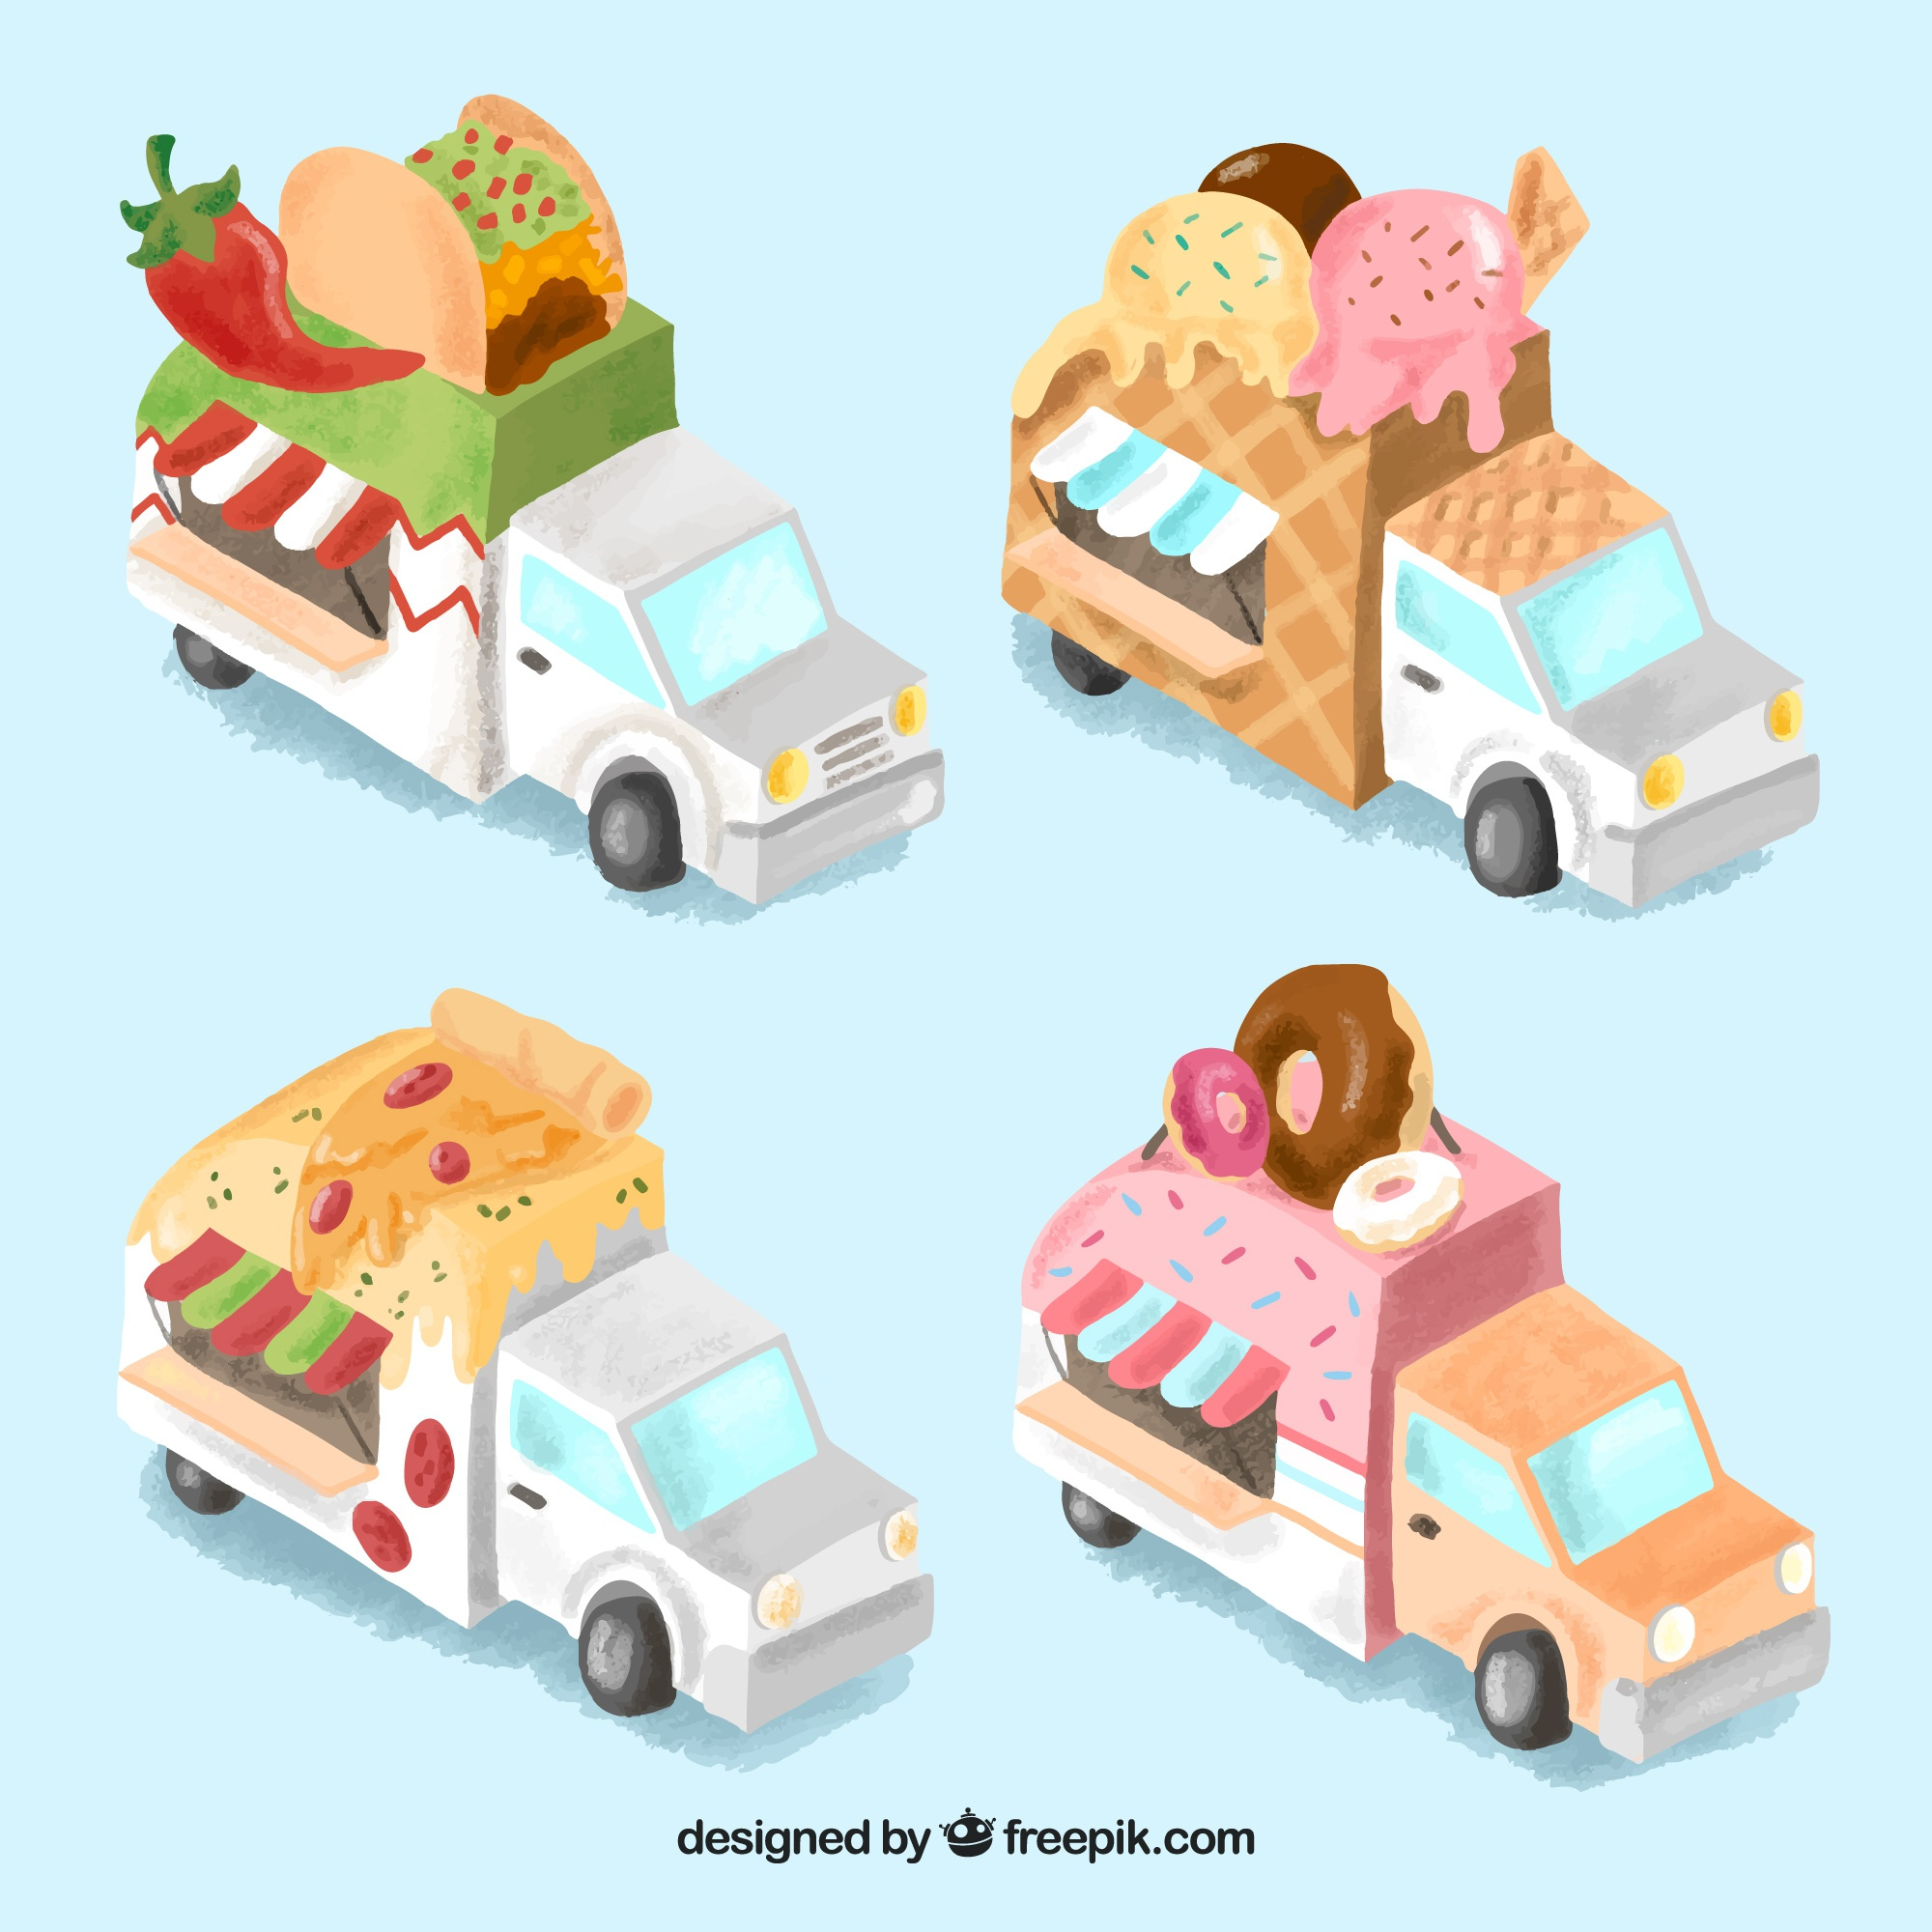 Food truck collectiion with isometric perspective